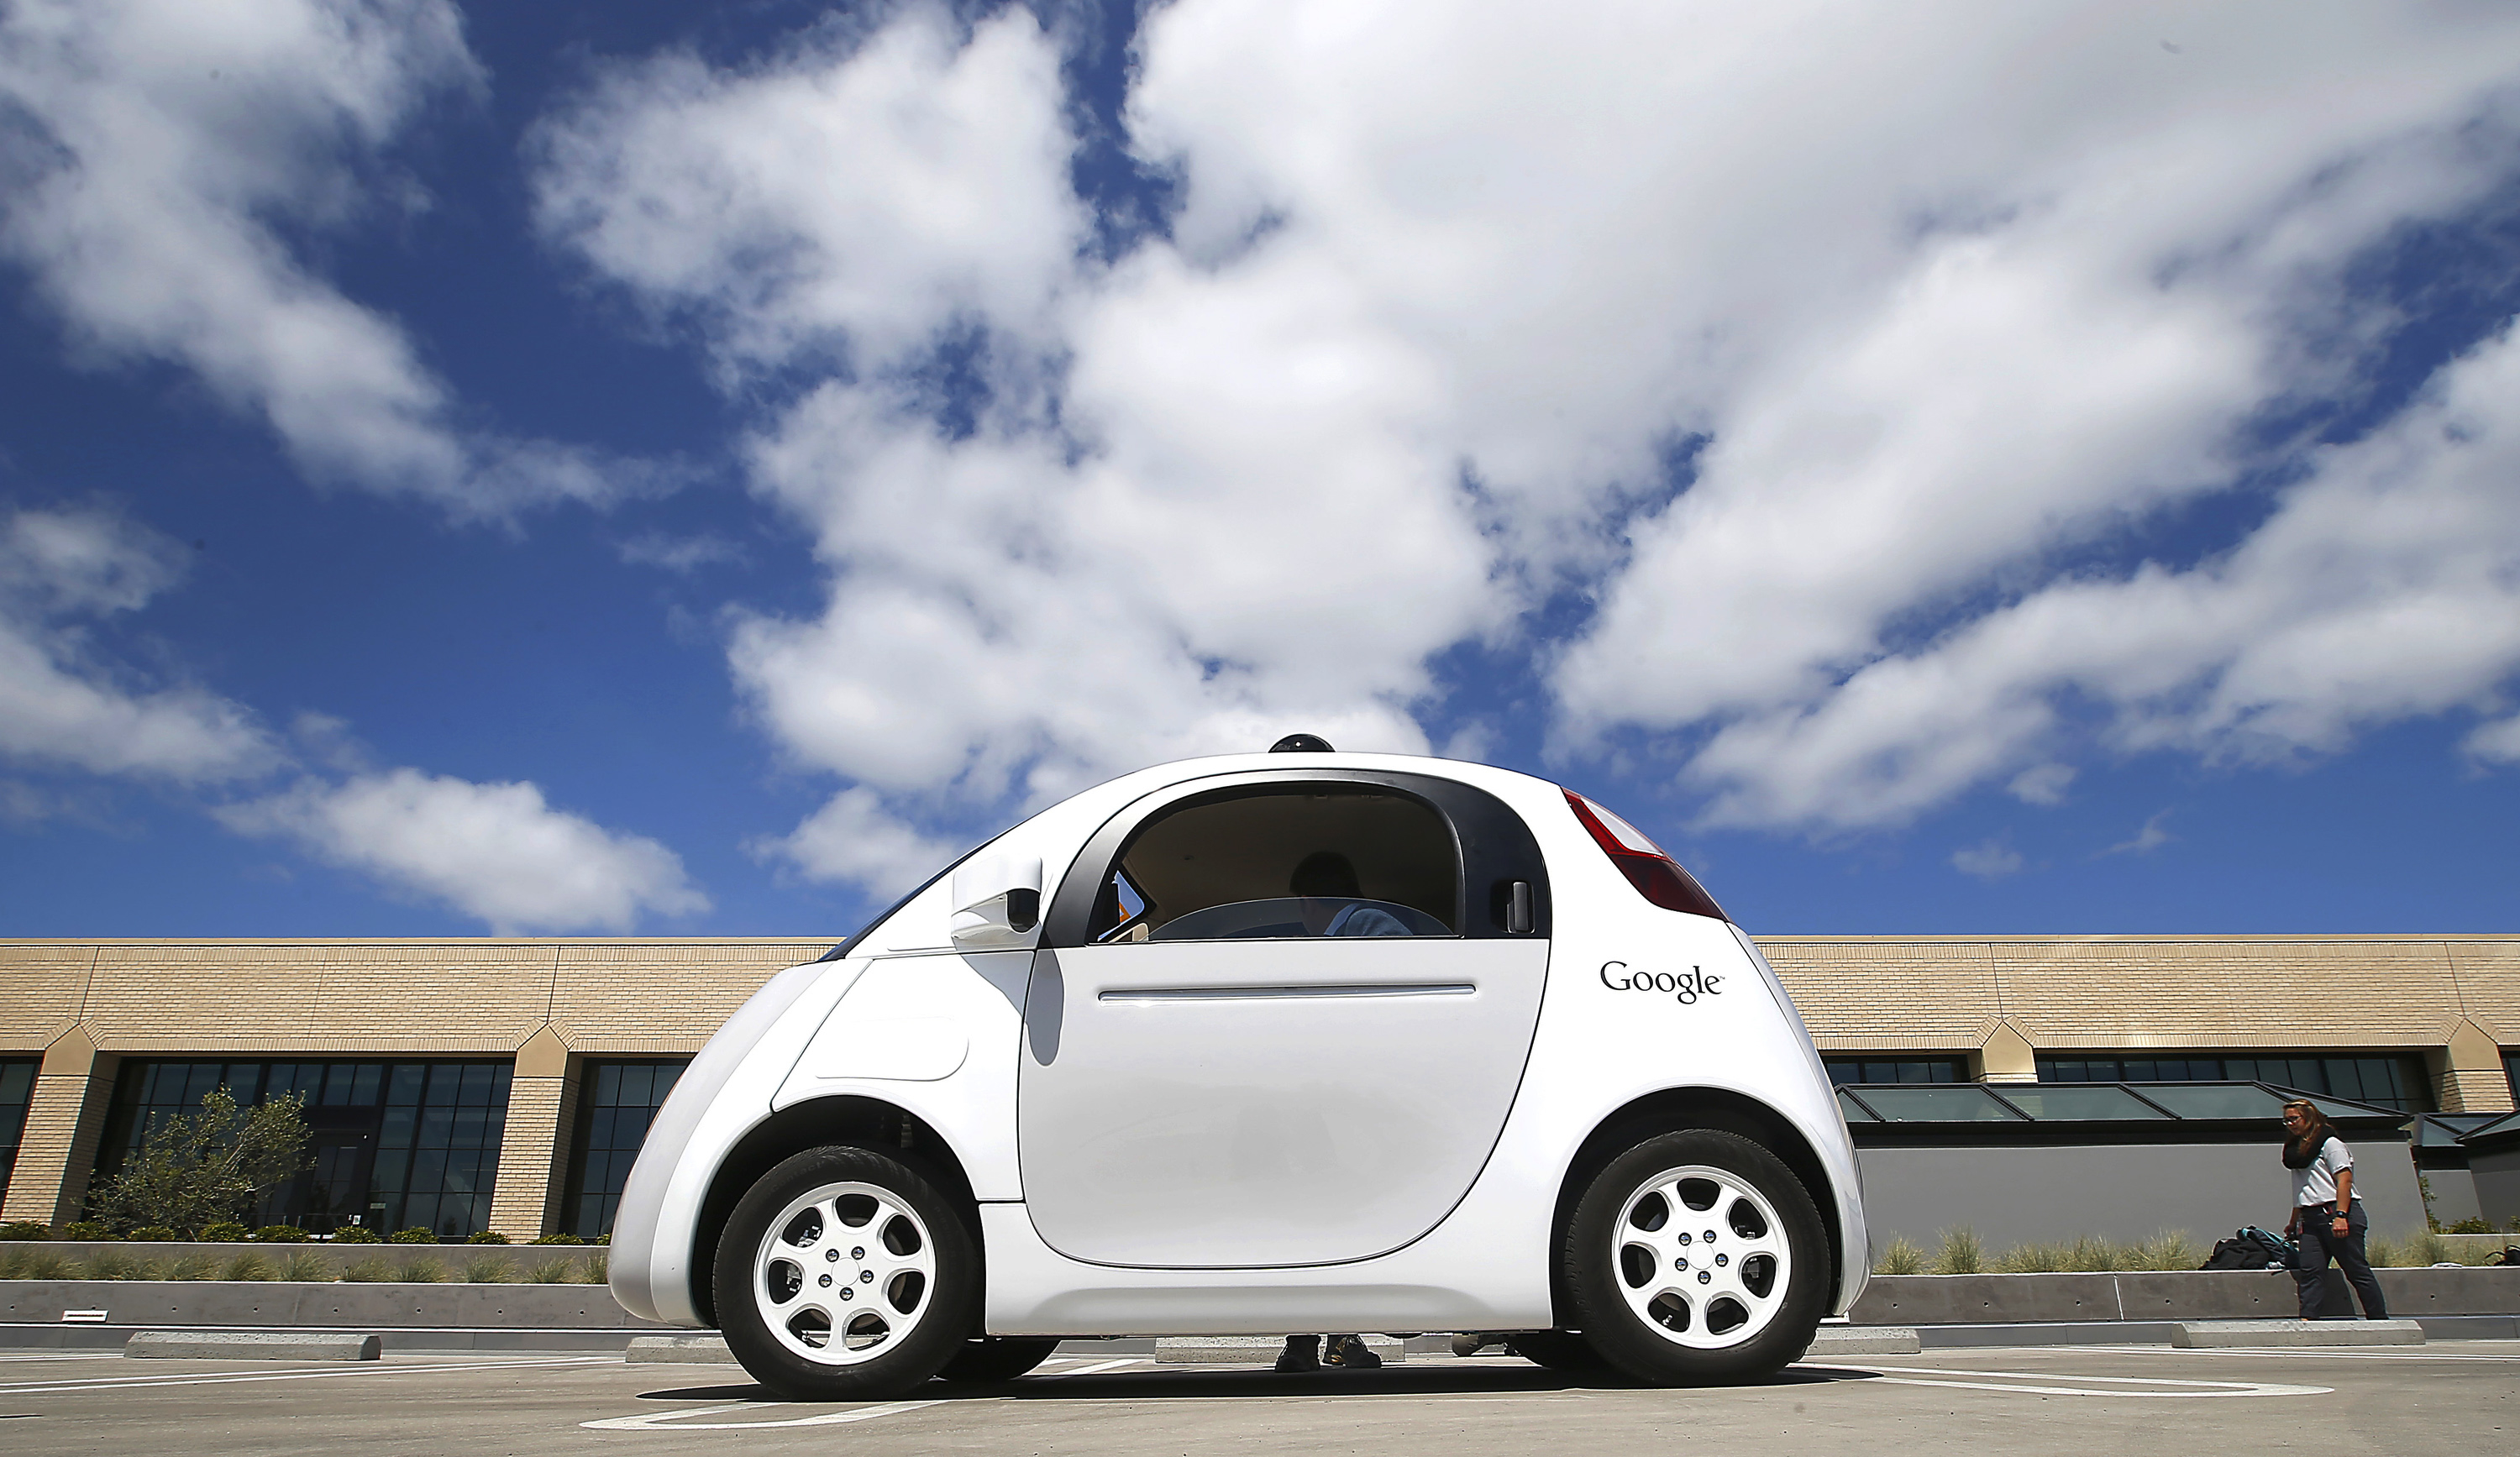 Google's new self-driving prototype car is presented during a demonstration at the Google campus in Mountain View, Calif. on May 13, 2015.